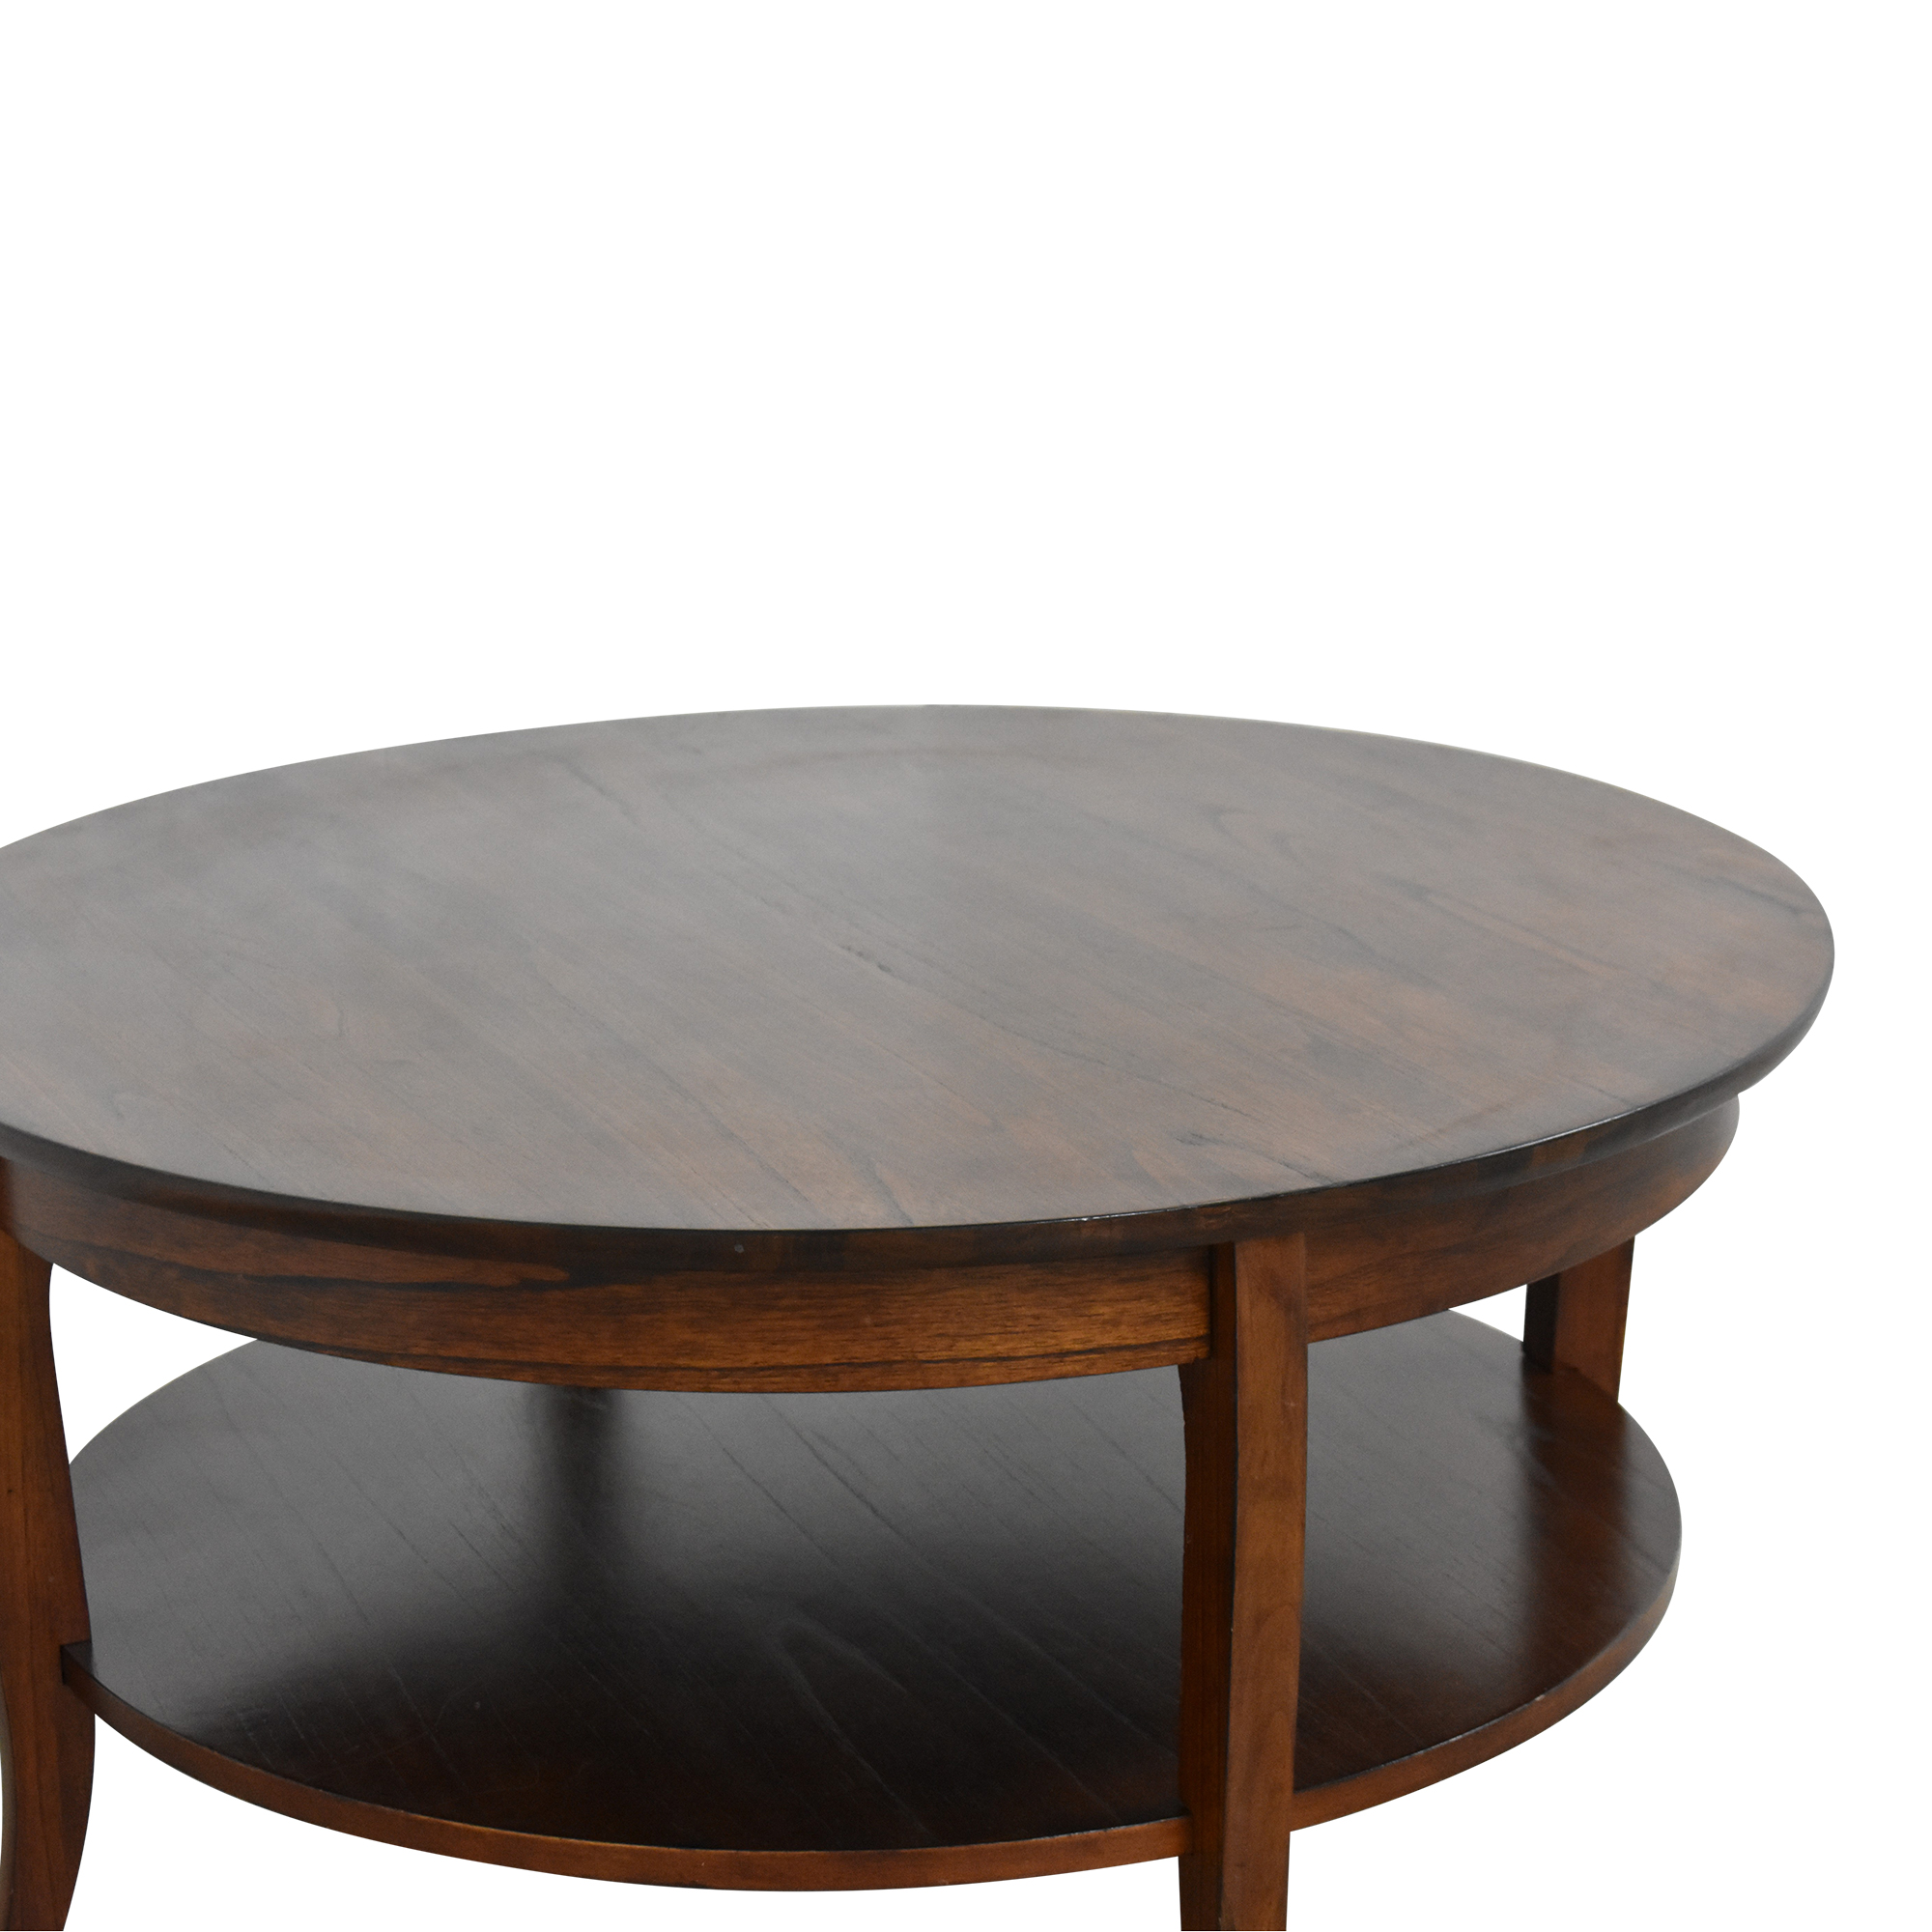 Macy's Macy's Round Coffee Table  discount